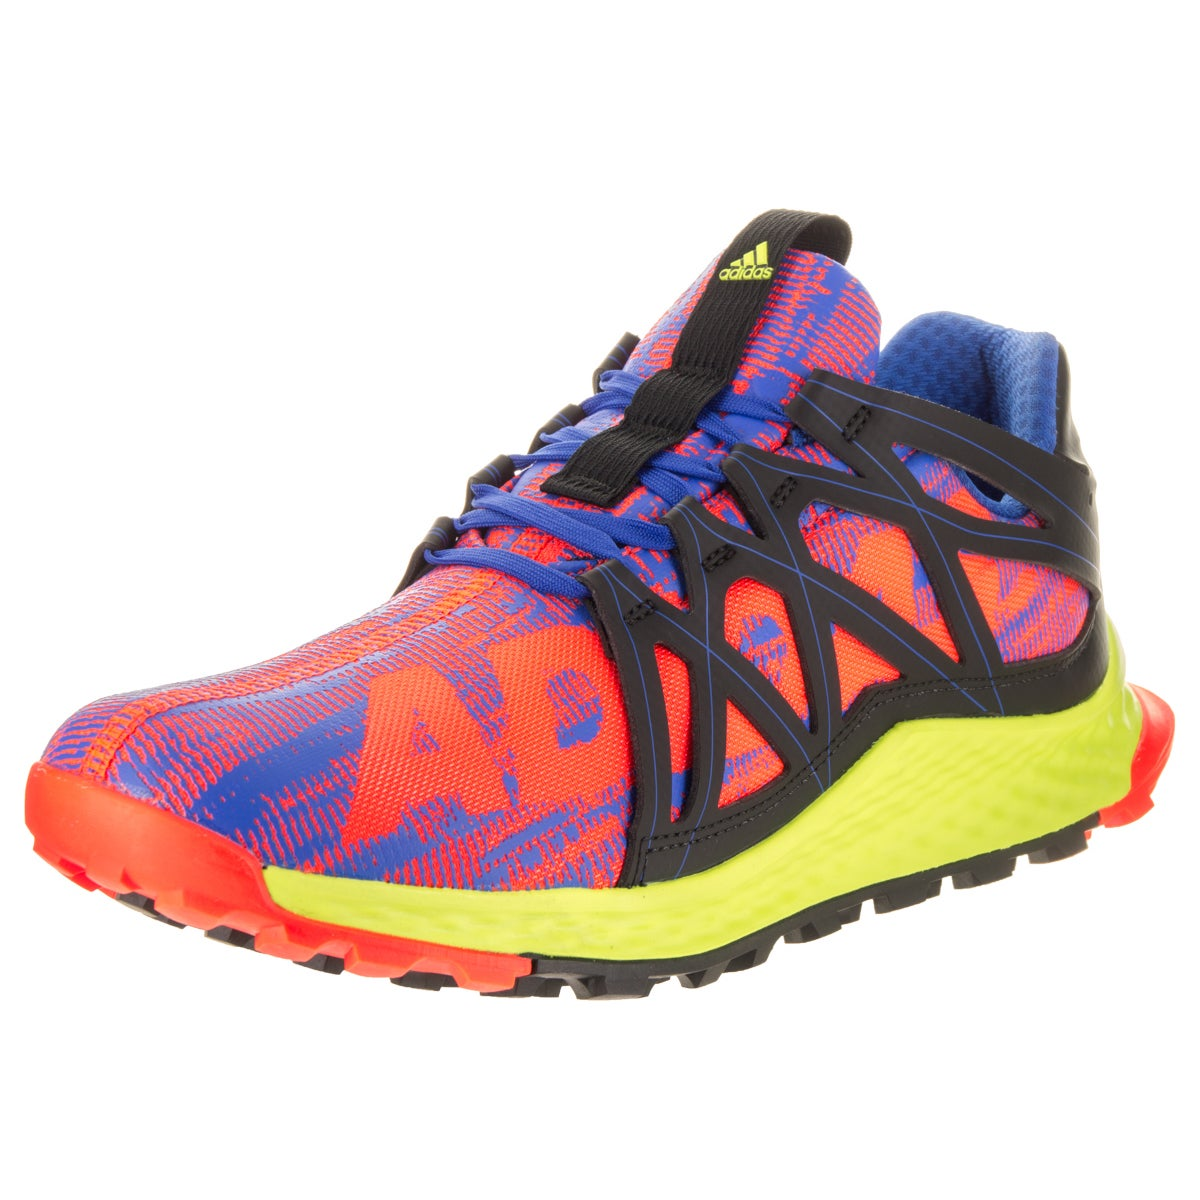 buy online 729f0 13384 Shop Adidas Men s Vigor Bounce Multicolor Synthetic Leather Running Shoes -  Free Shipping Today - Overstock.com - 14163307